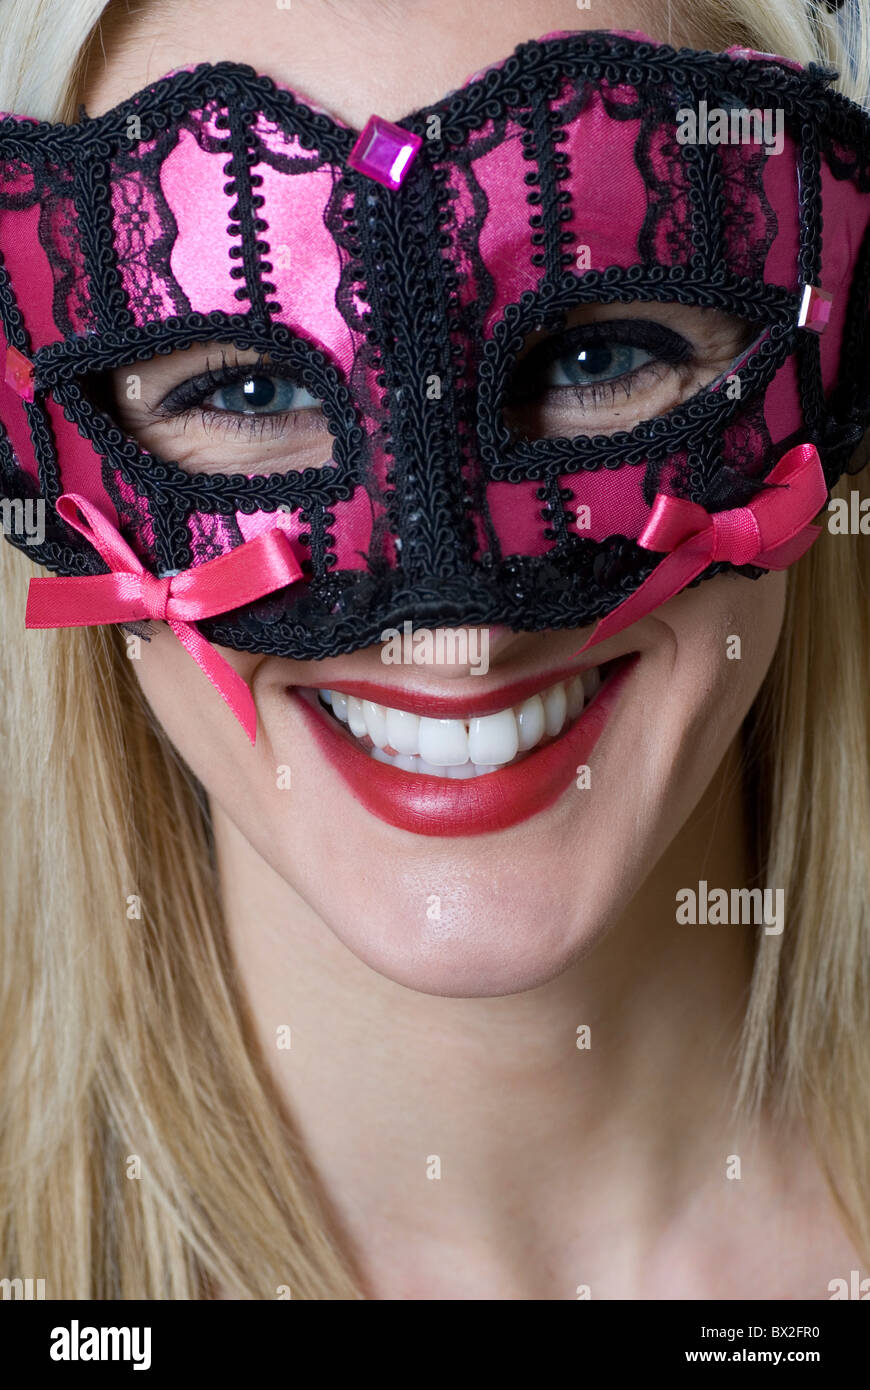 Young woman in pink party mask - Stock Image